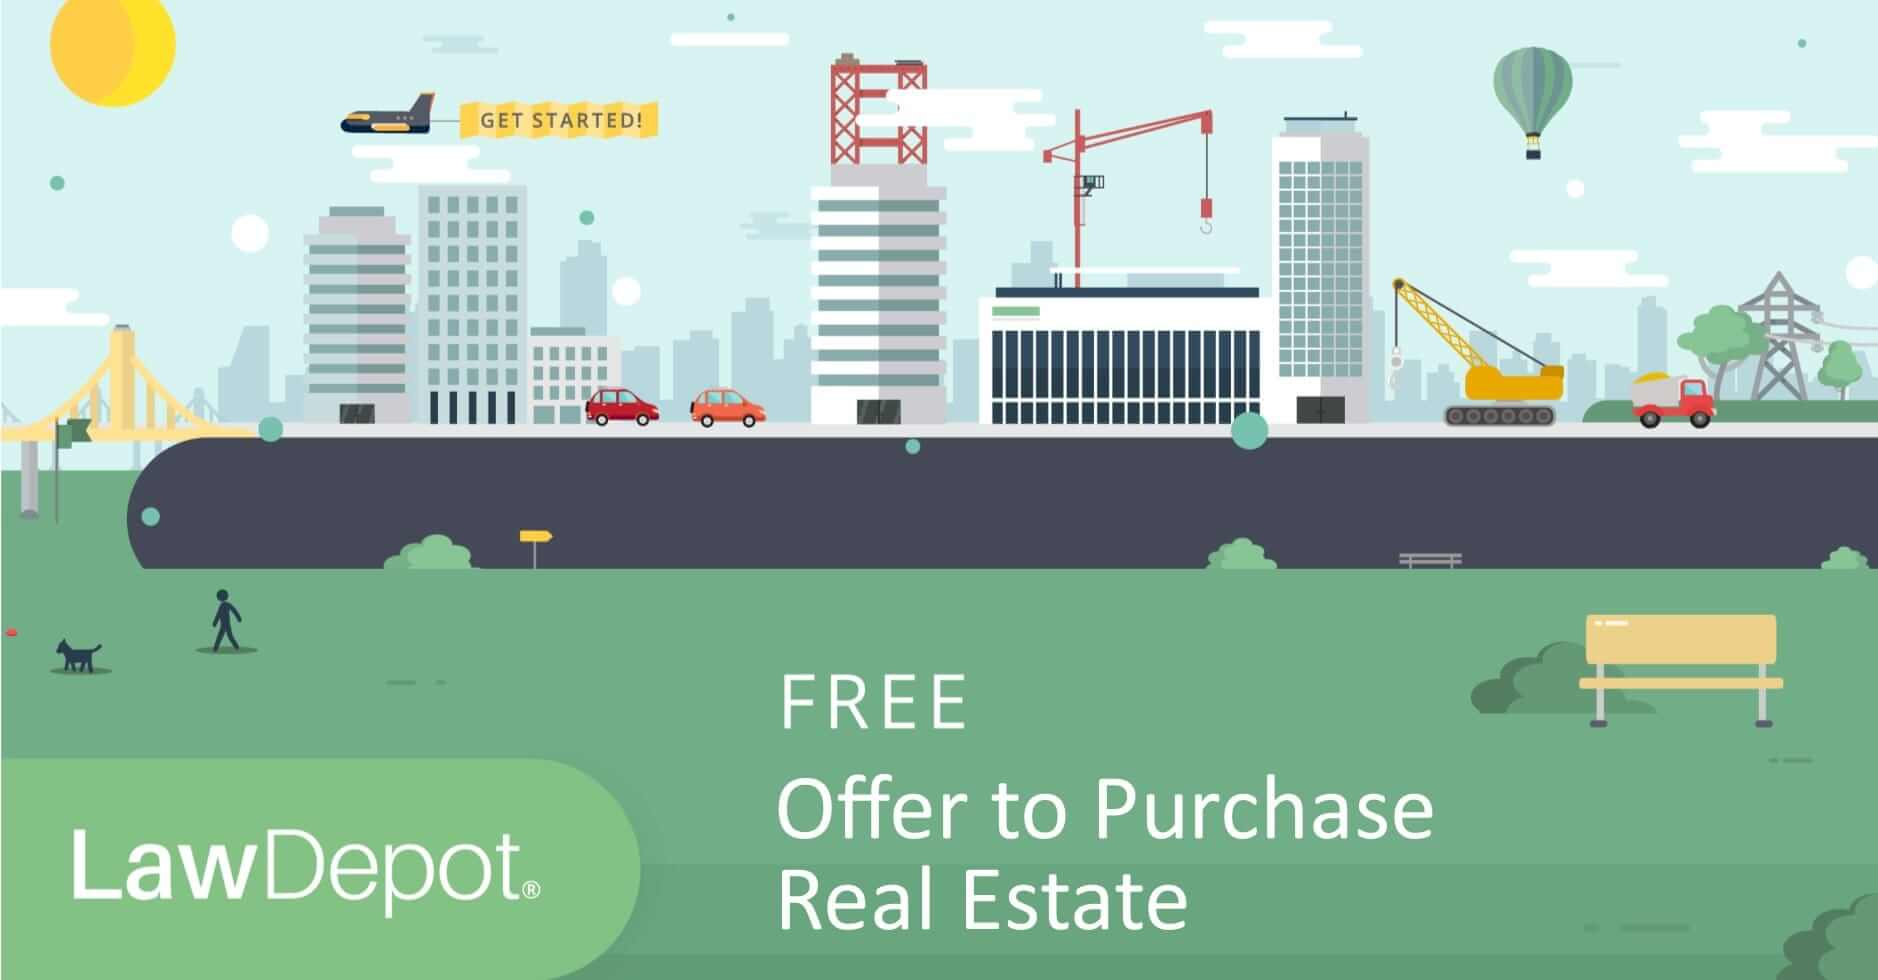 Free Offer to Purchase Real Estate - Create, Download, and